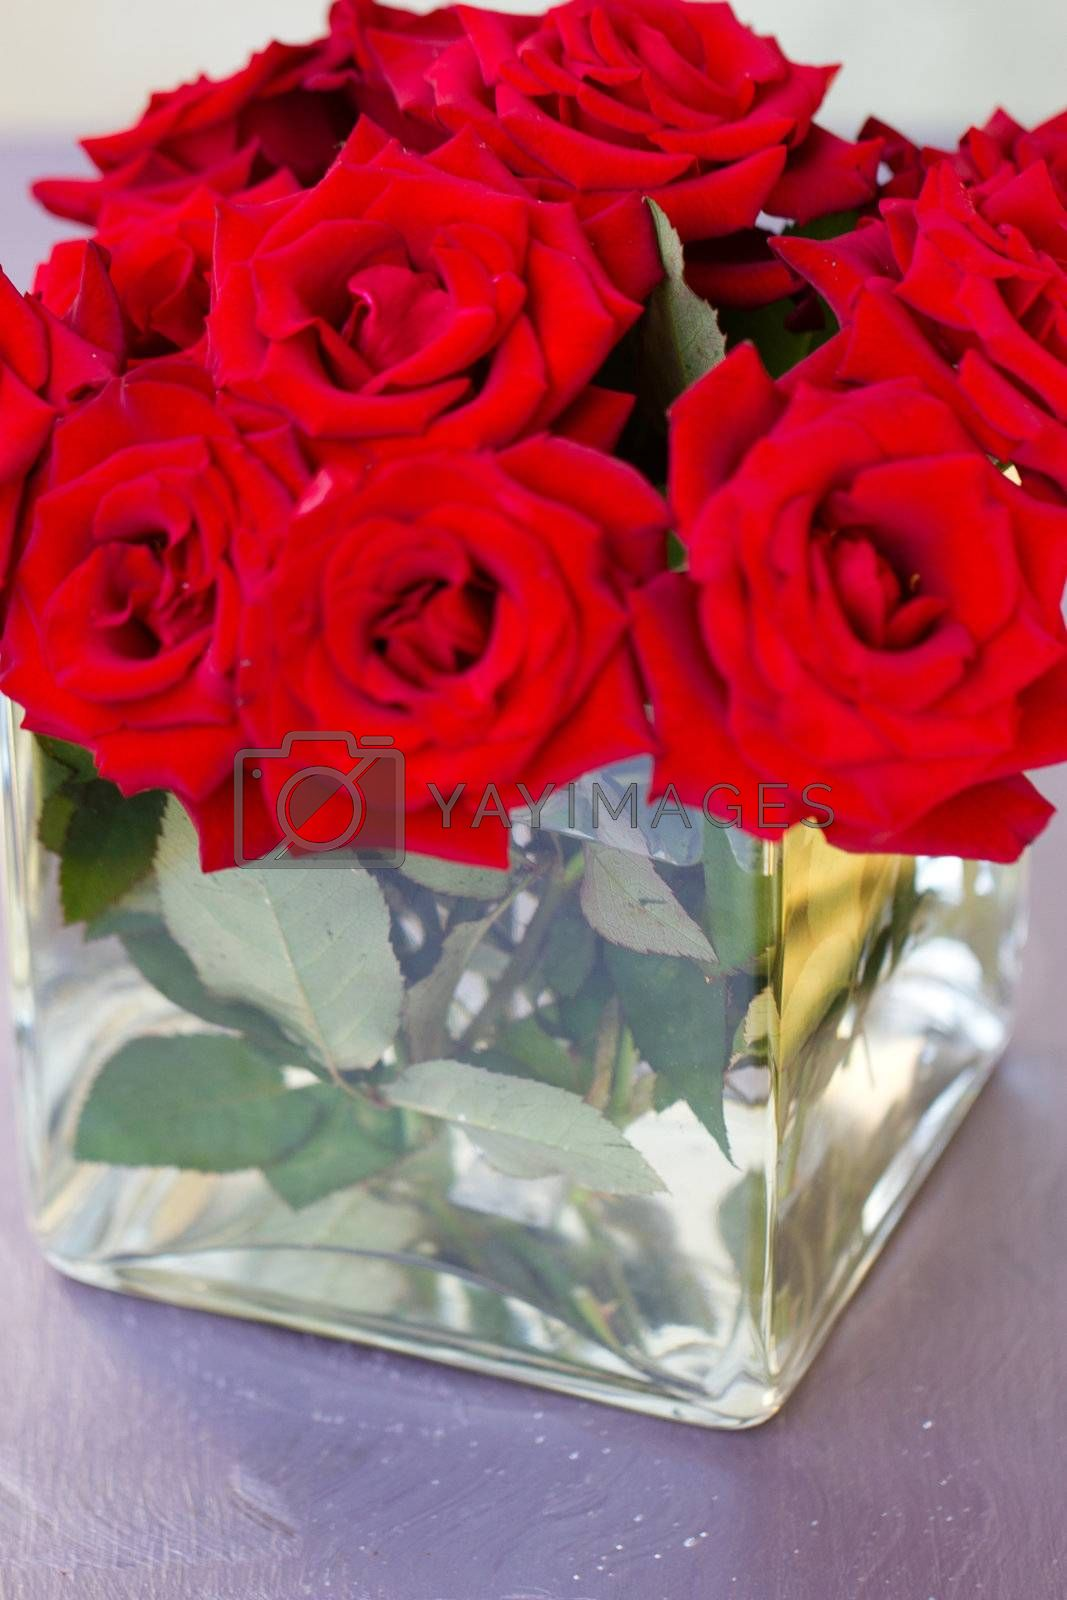 Bunch of red rose flowers in vase by victosha